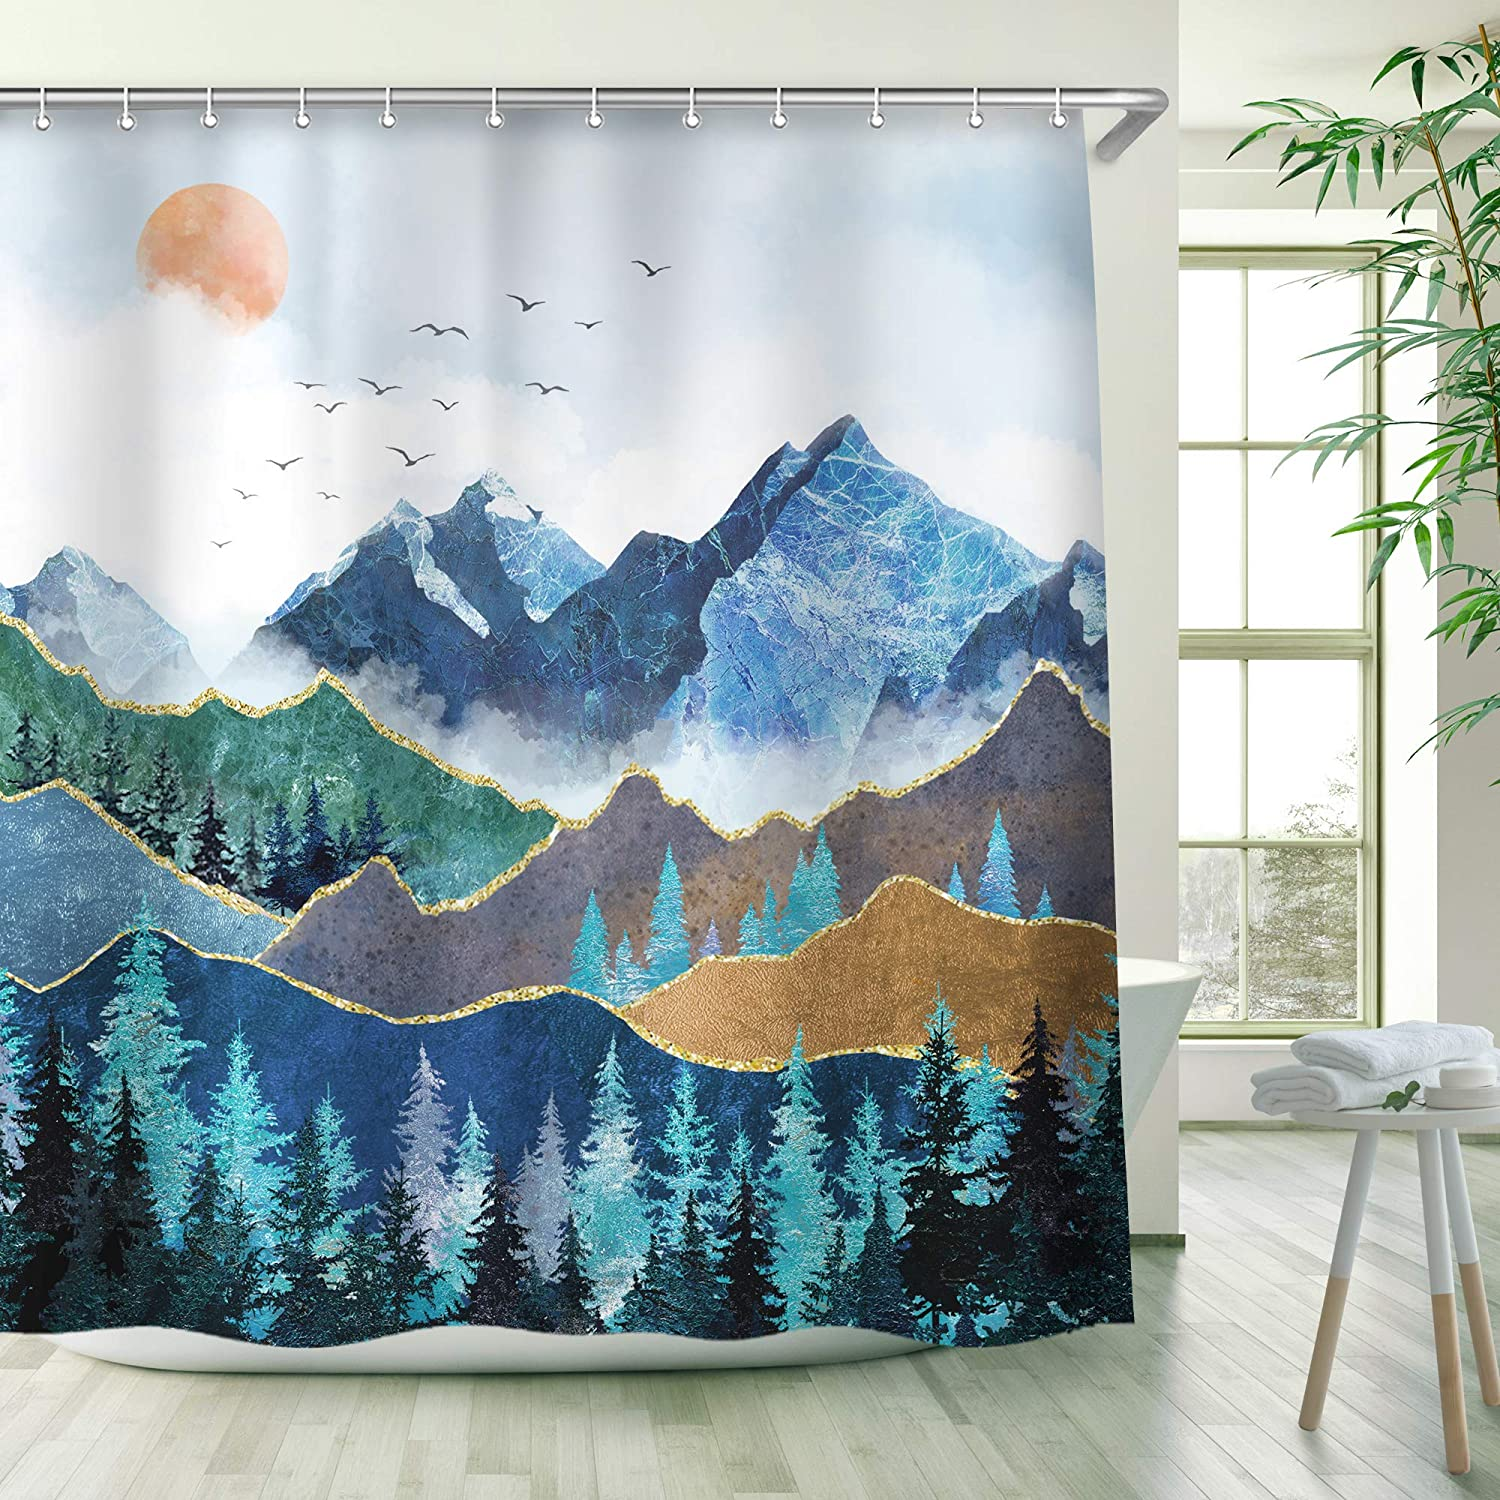 RosieLily Mountain Shower Curtain, Nature Shower Curtains Set with 12 Hooks, Waterproof Forest Shower Curtain, Decor Blue Japanese Mountain Forest Shower Curtain, 72x72 inch